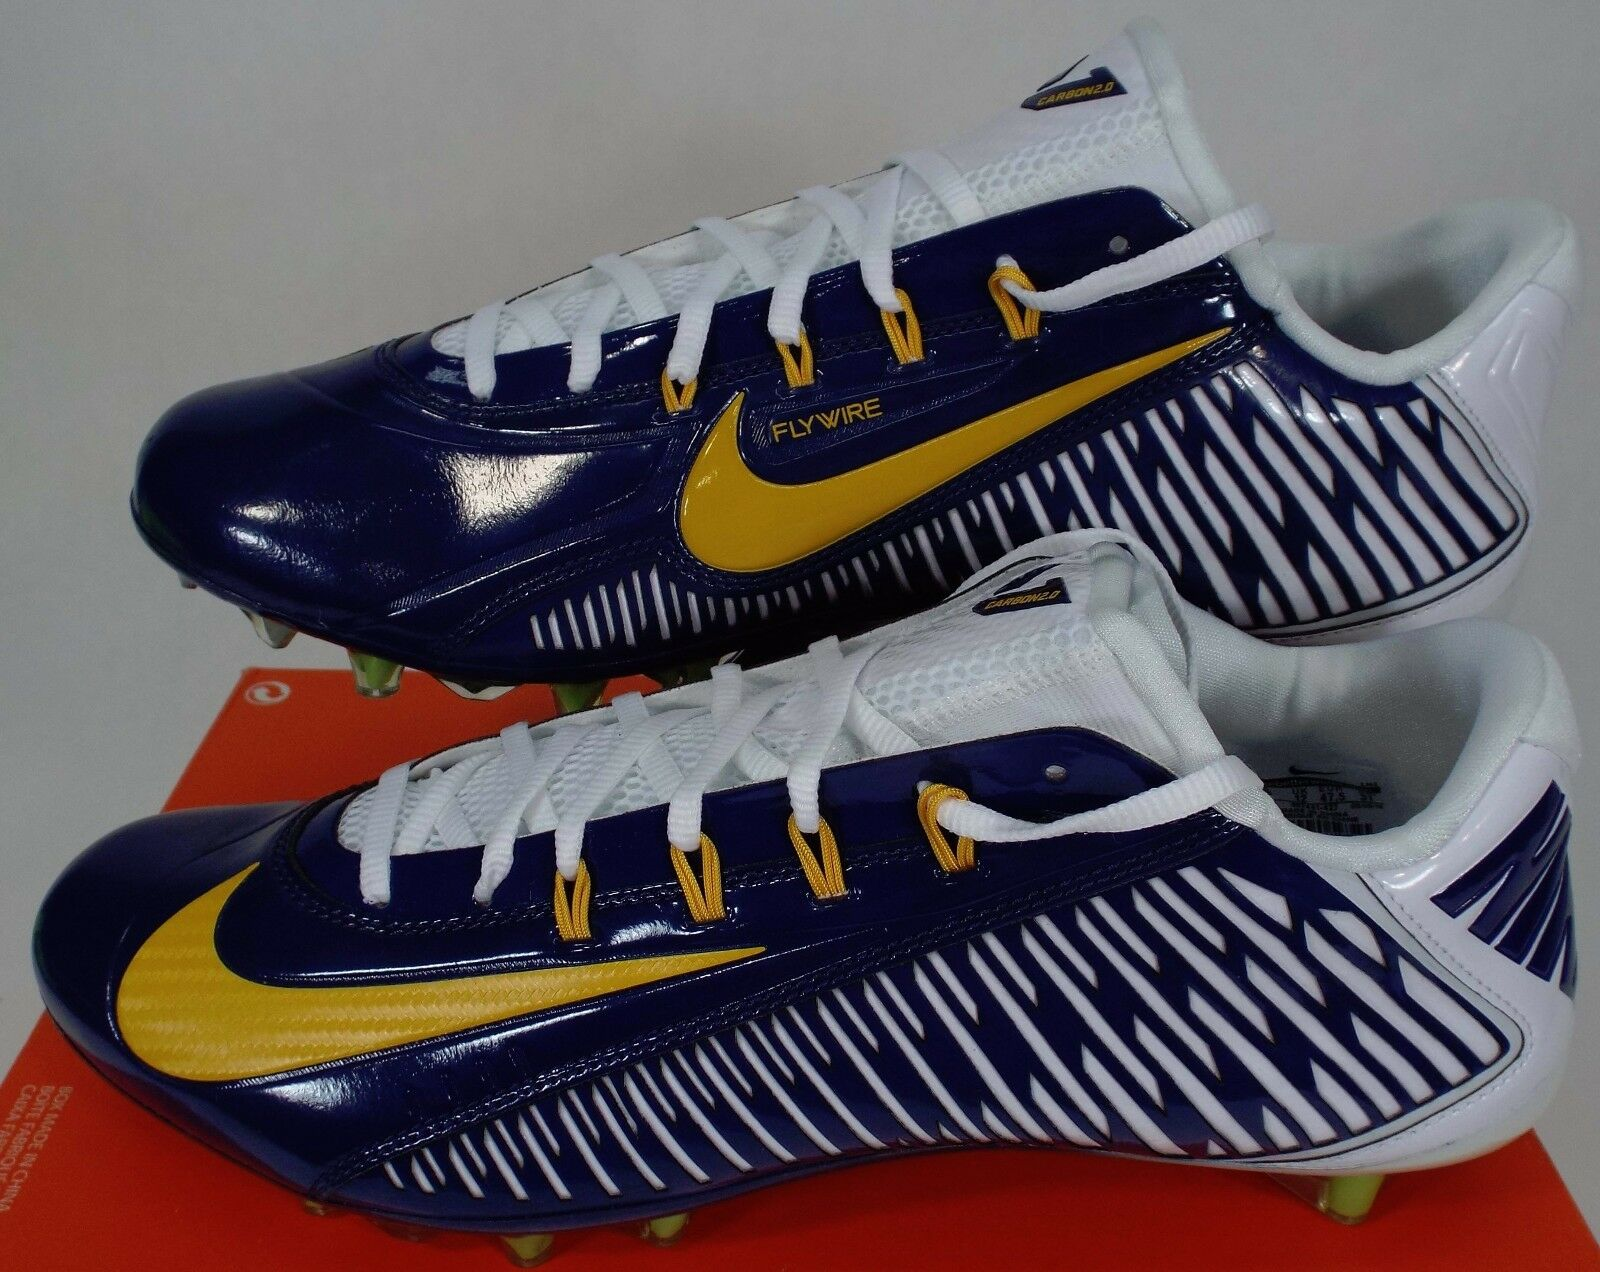 New homme 13 NIKE Vapor Carbon Navy Elite 2018 TD PF Navy Carbon Cleats chaussures 155 657441-427 b82ebd